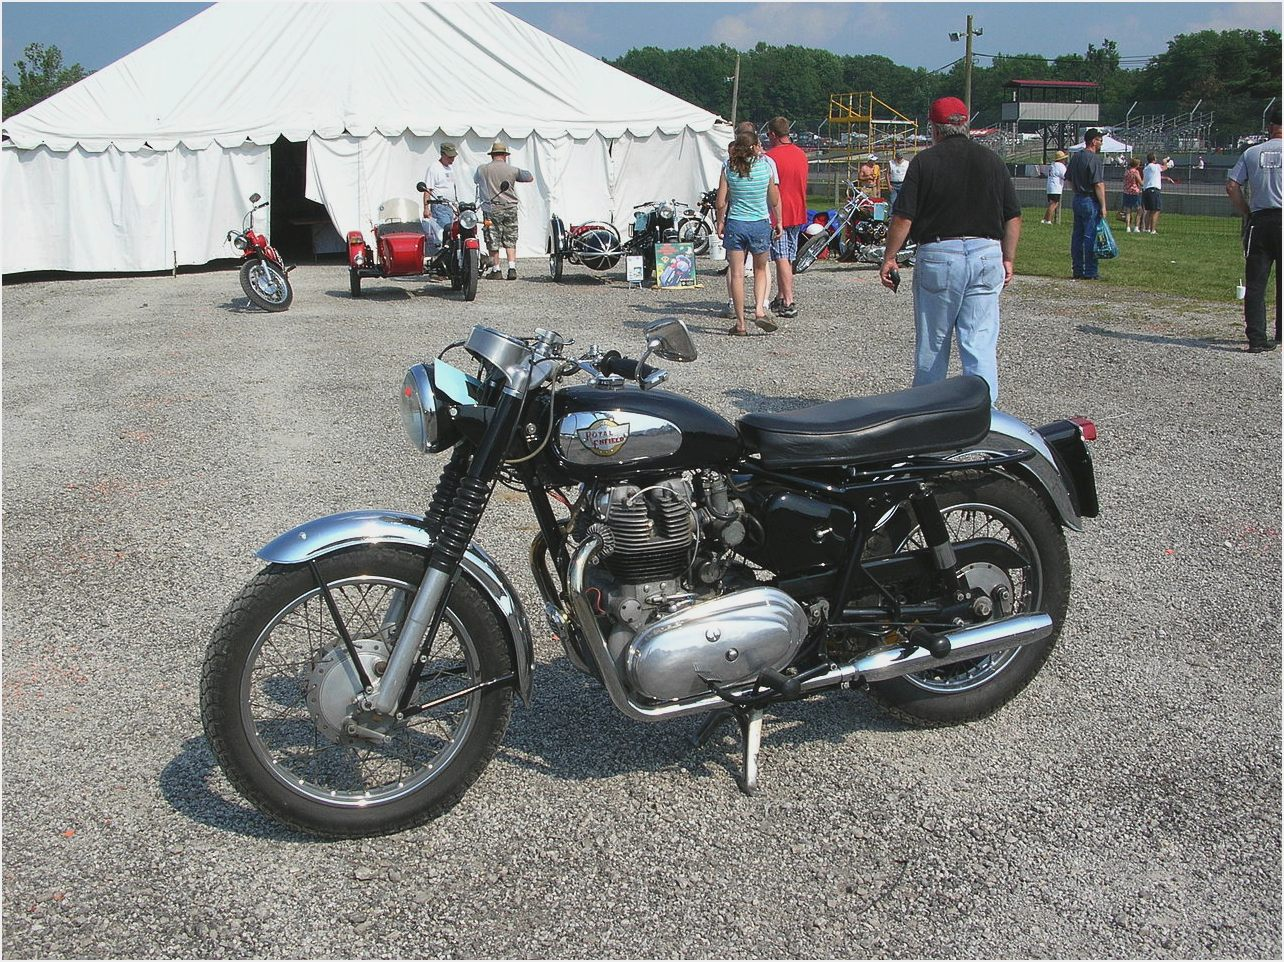 Royal Enfield Bullet 500 Army 2007 images #127493